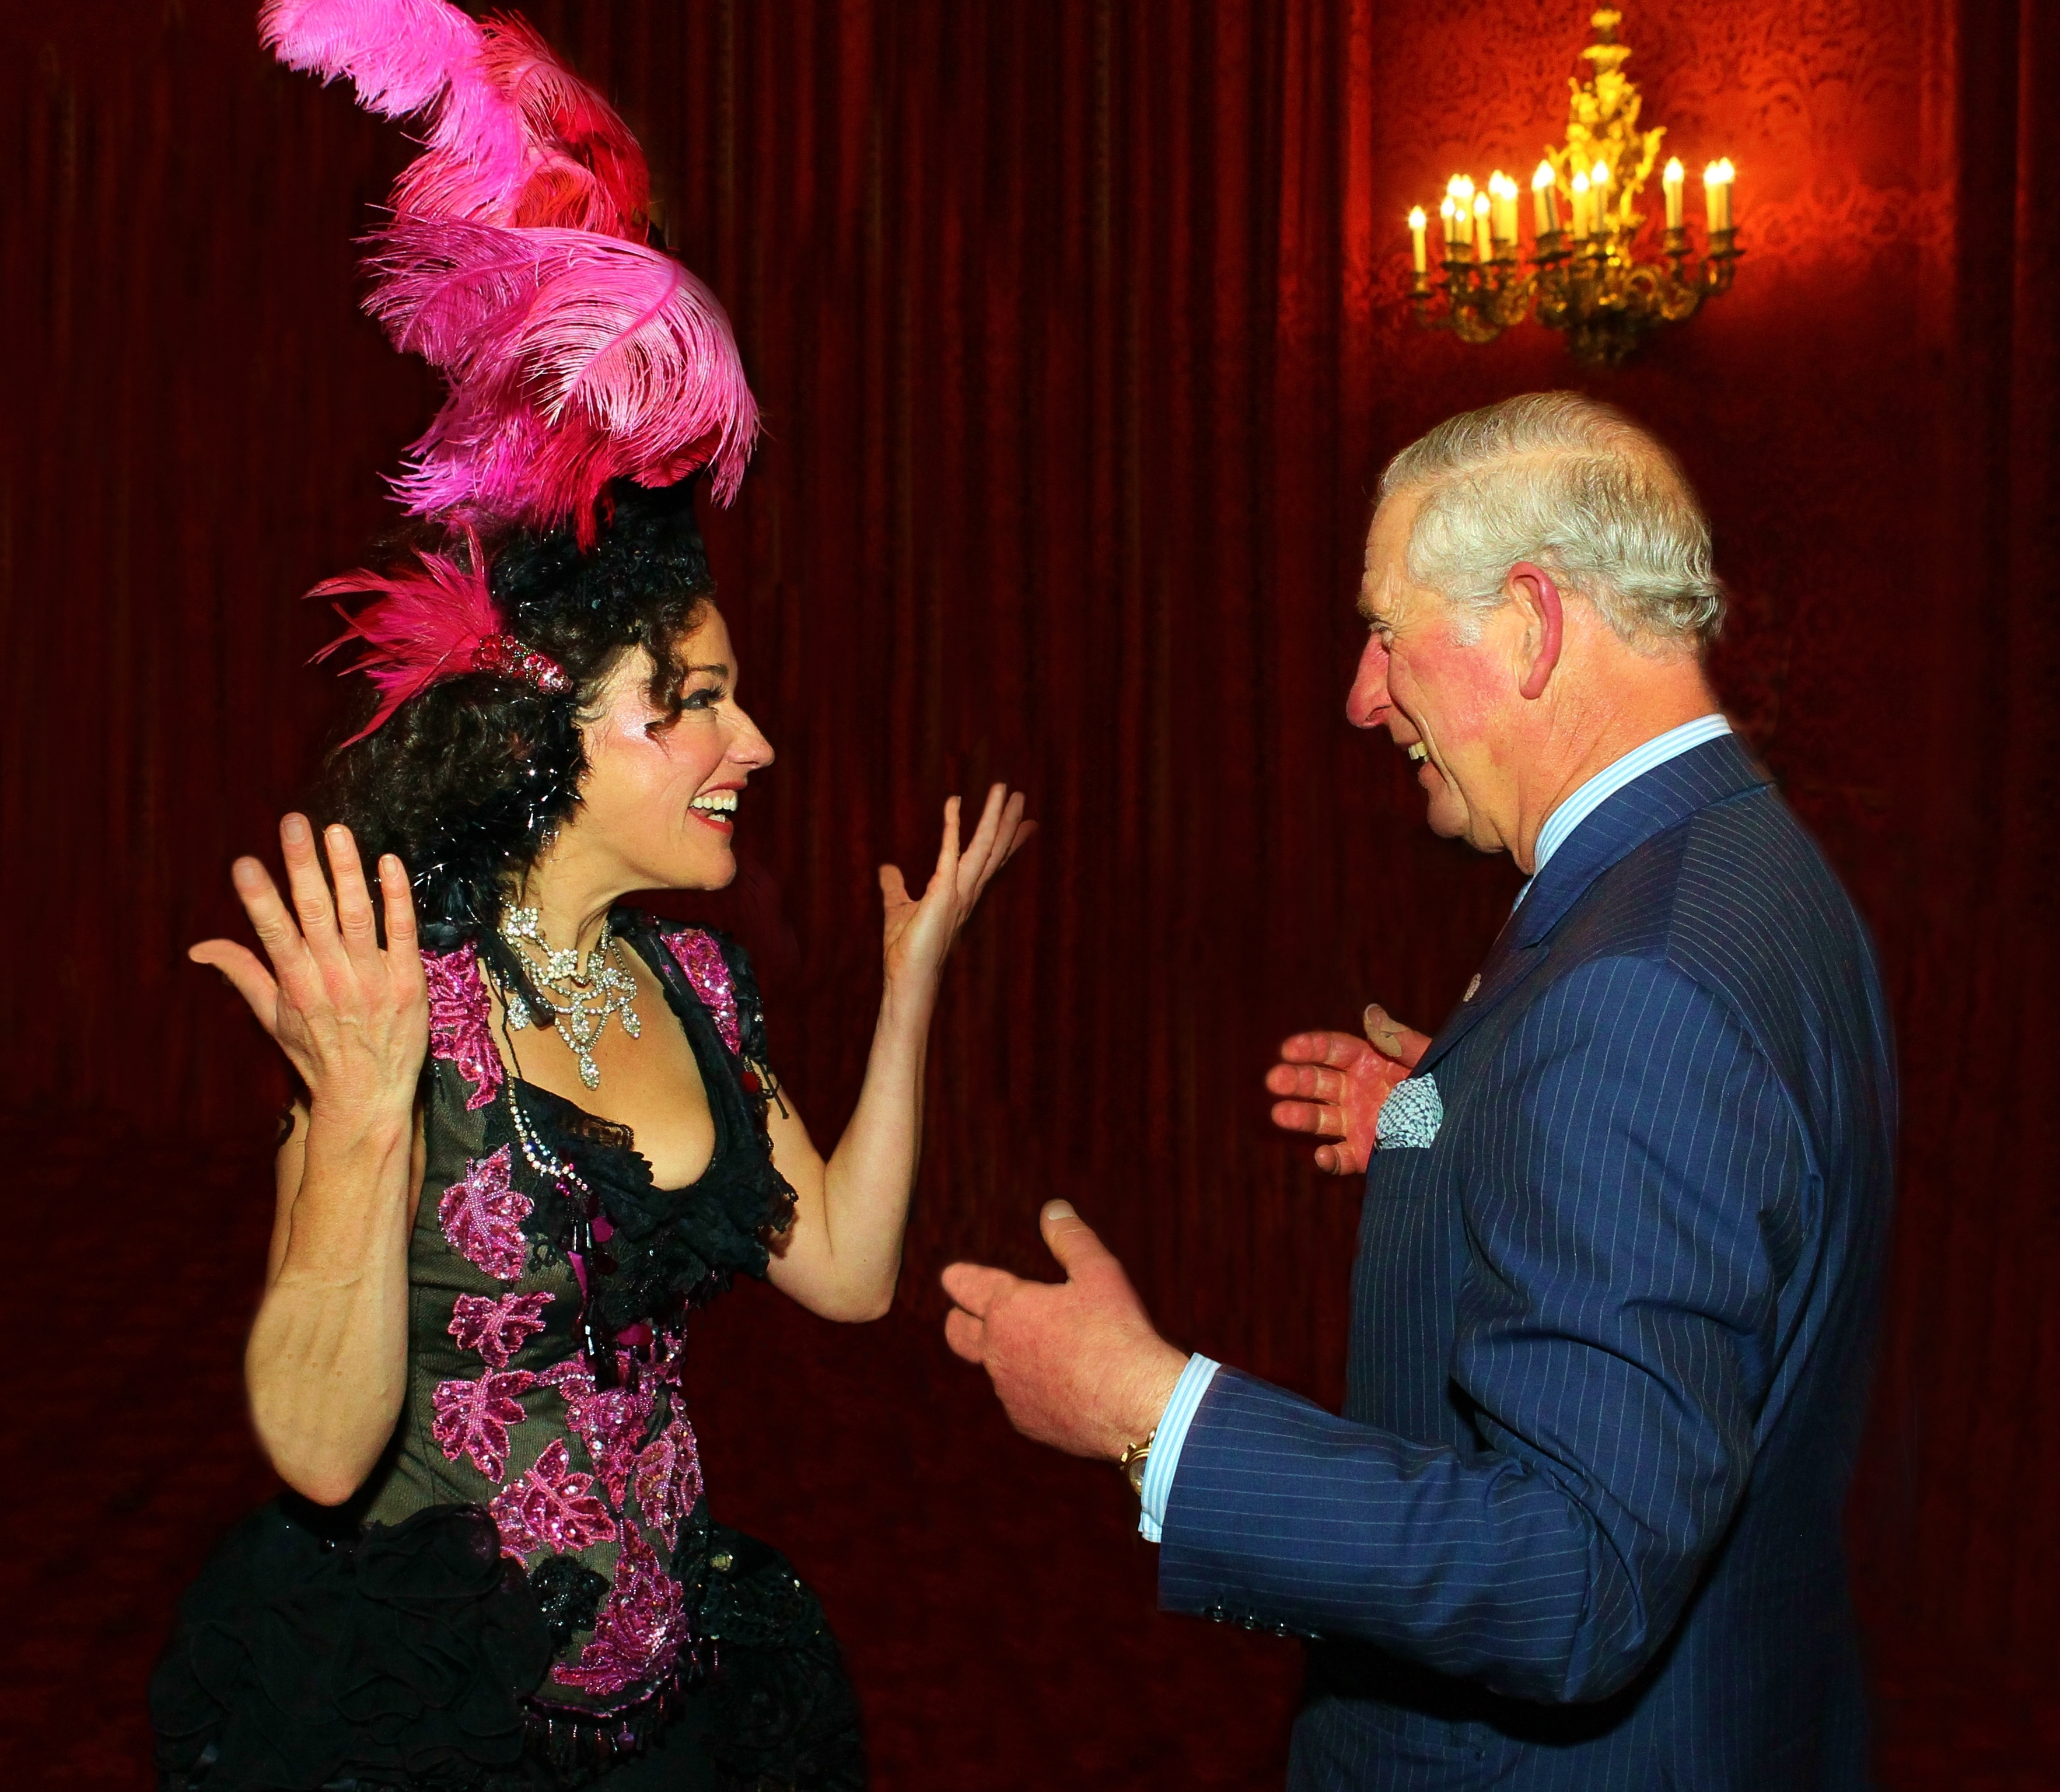 With Prince Charles!